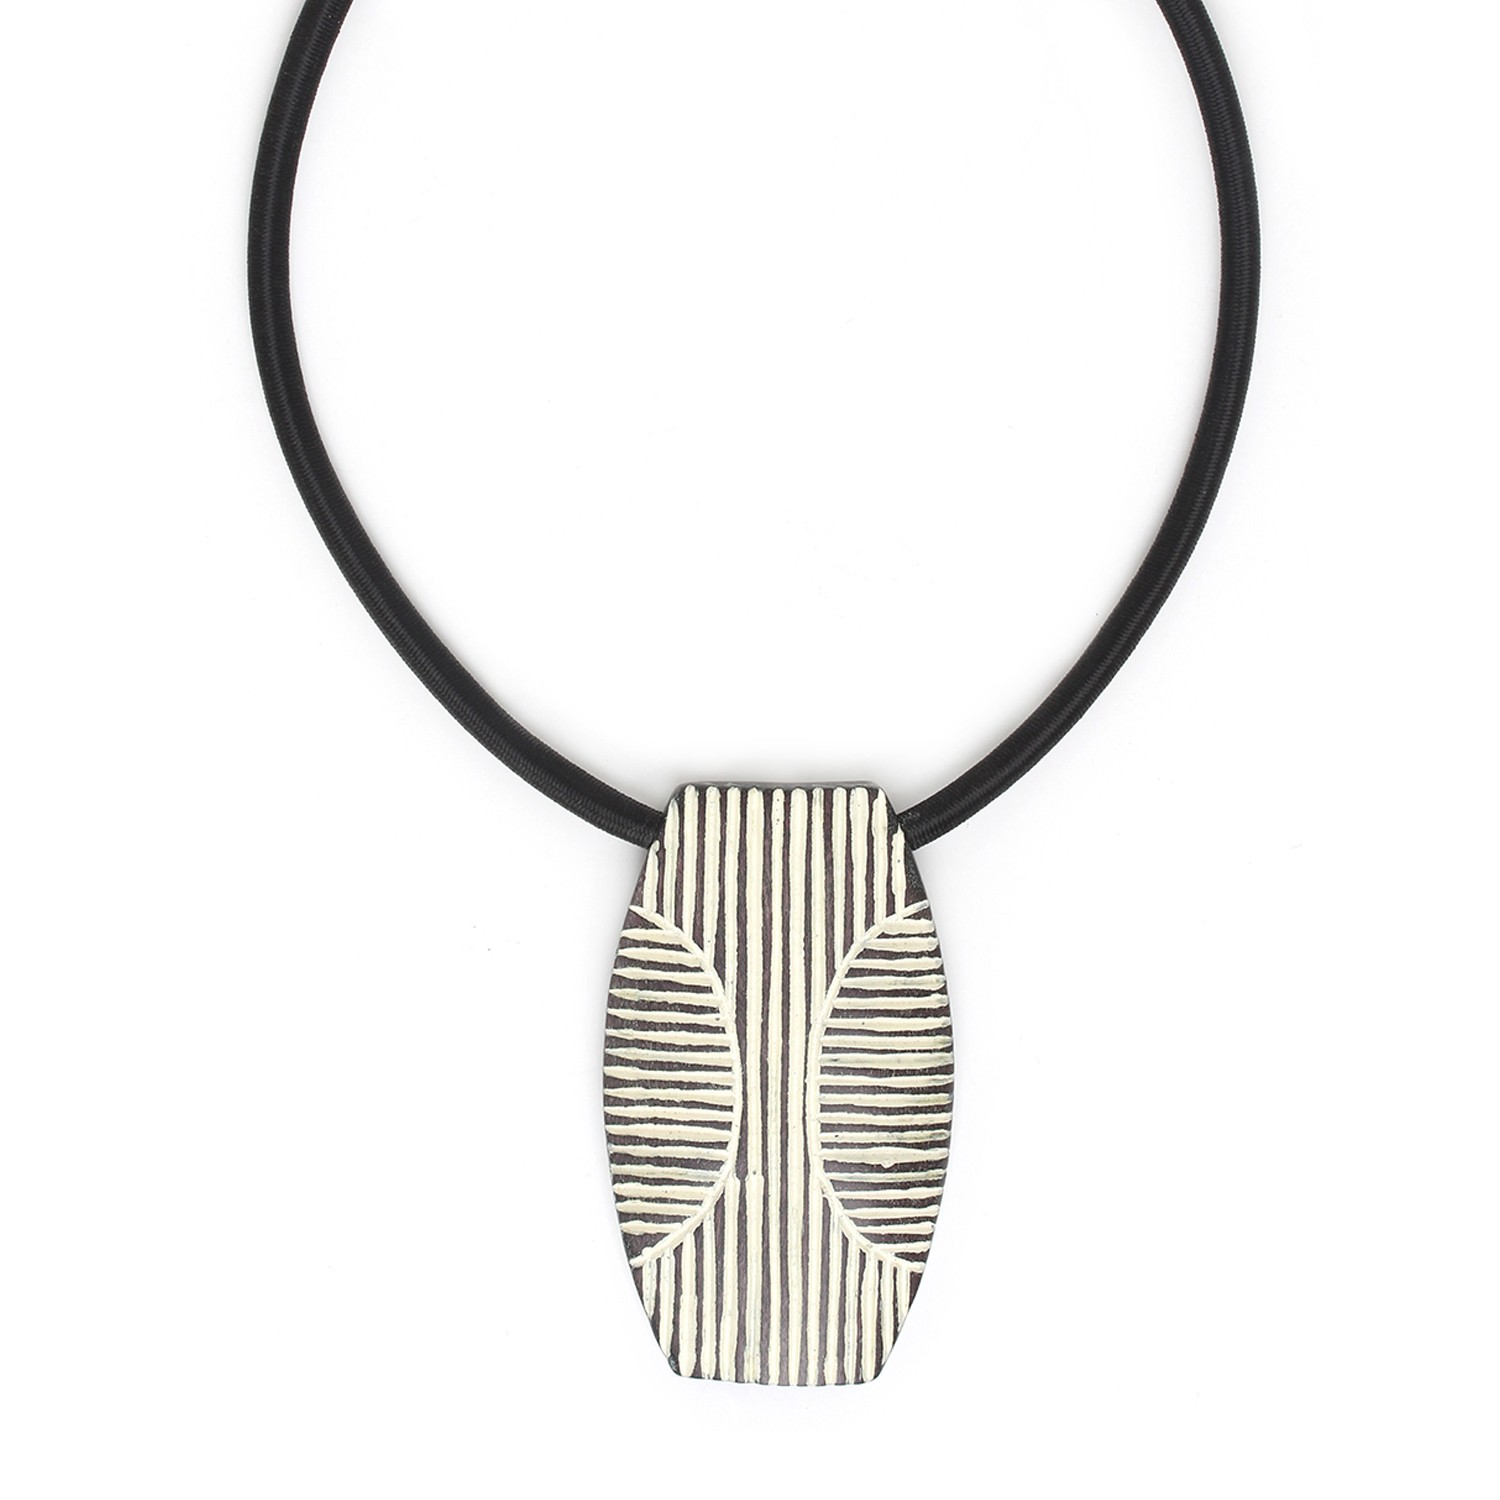 ZULU long shield necklace